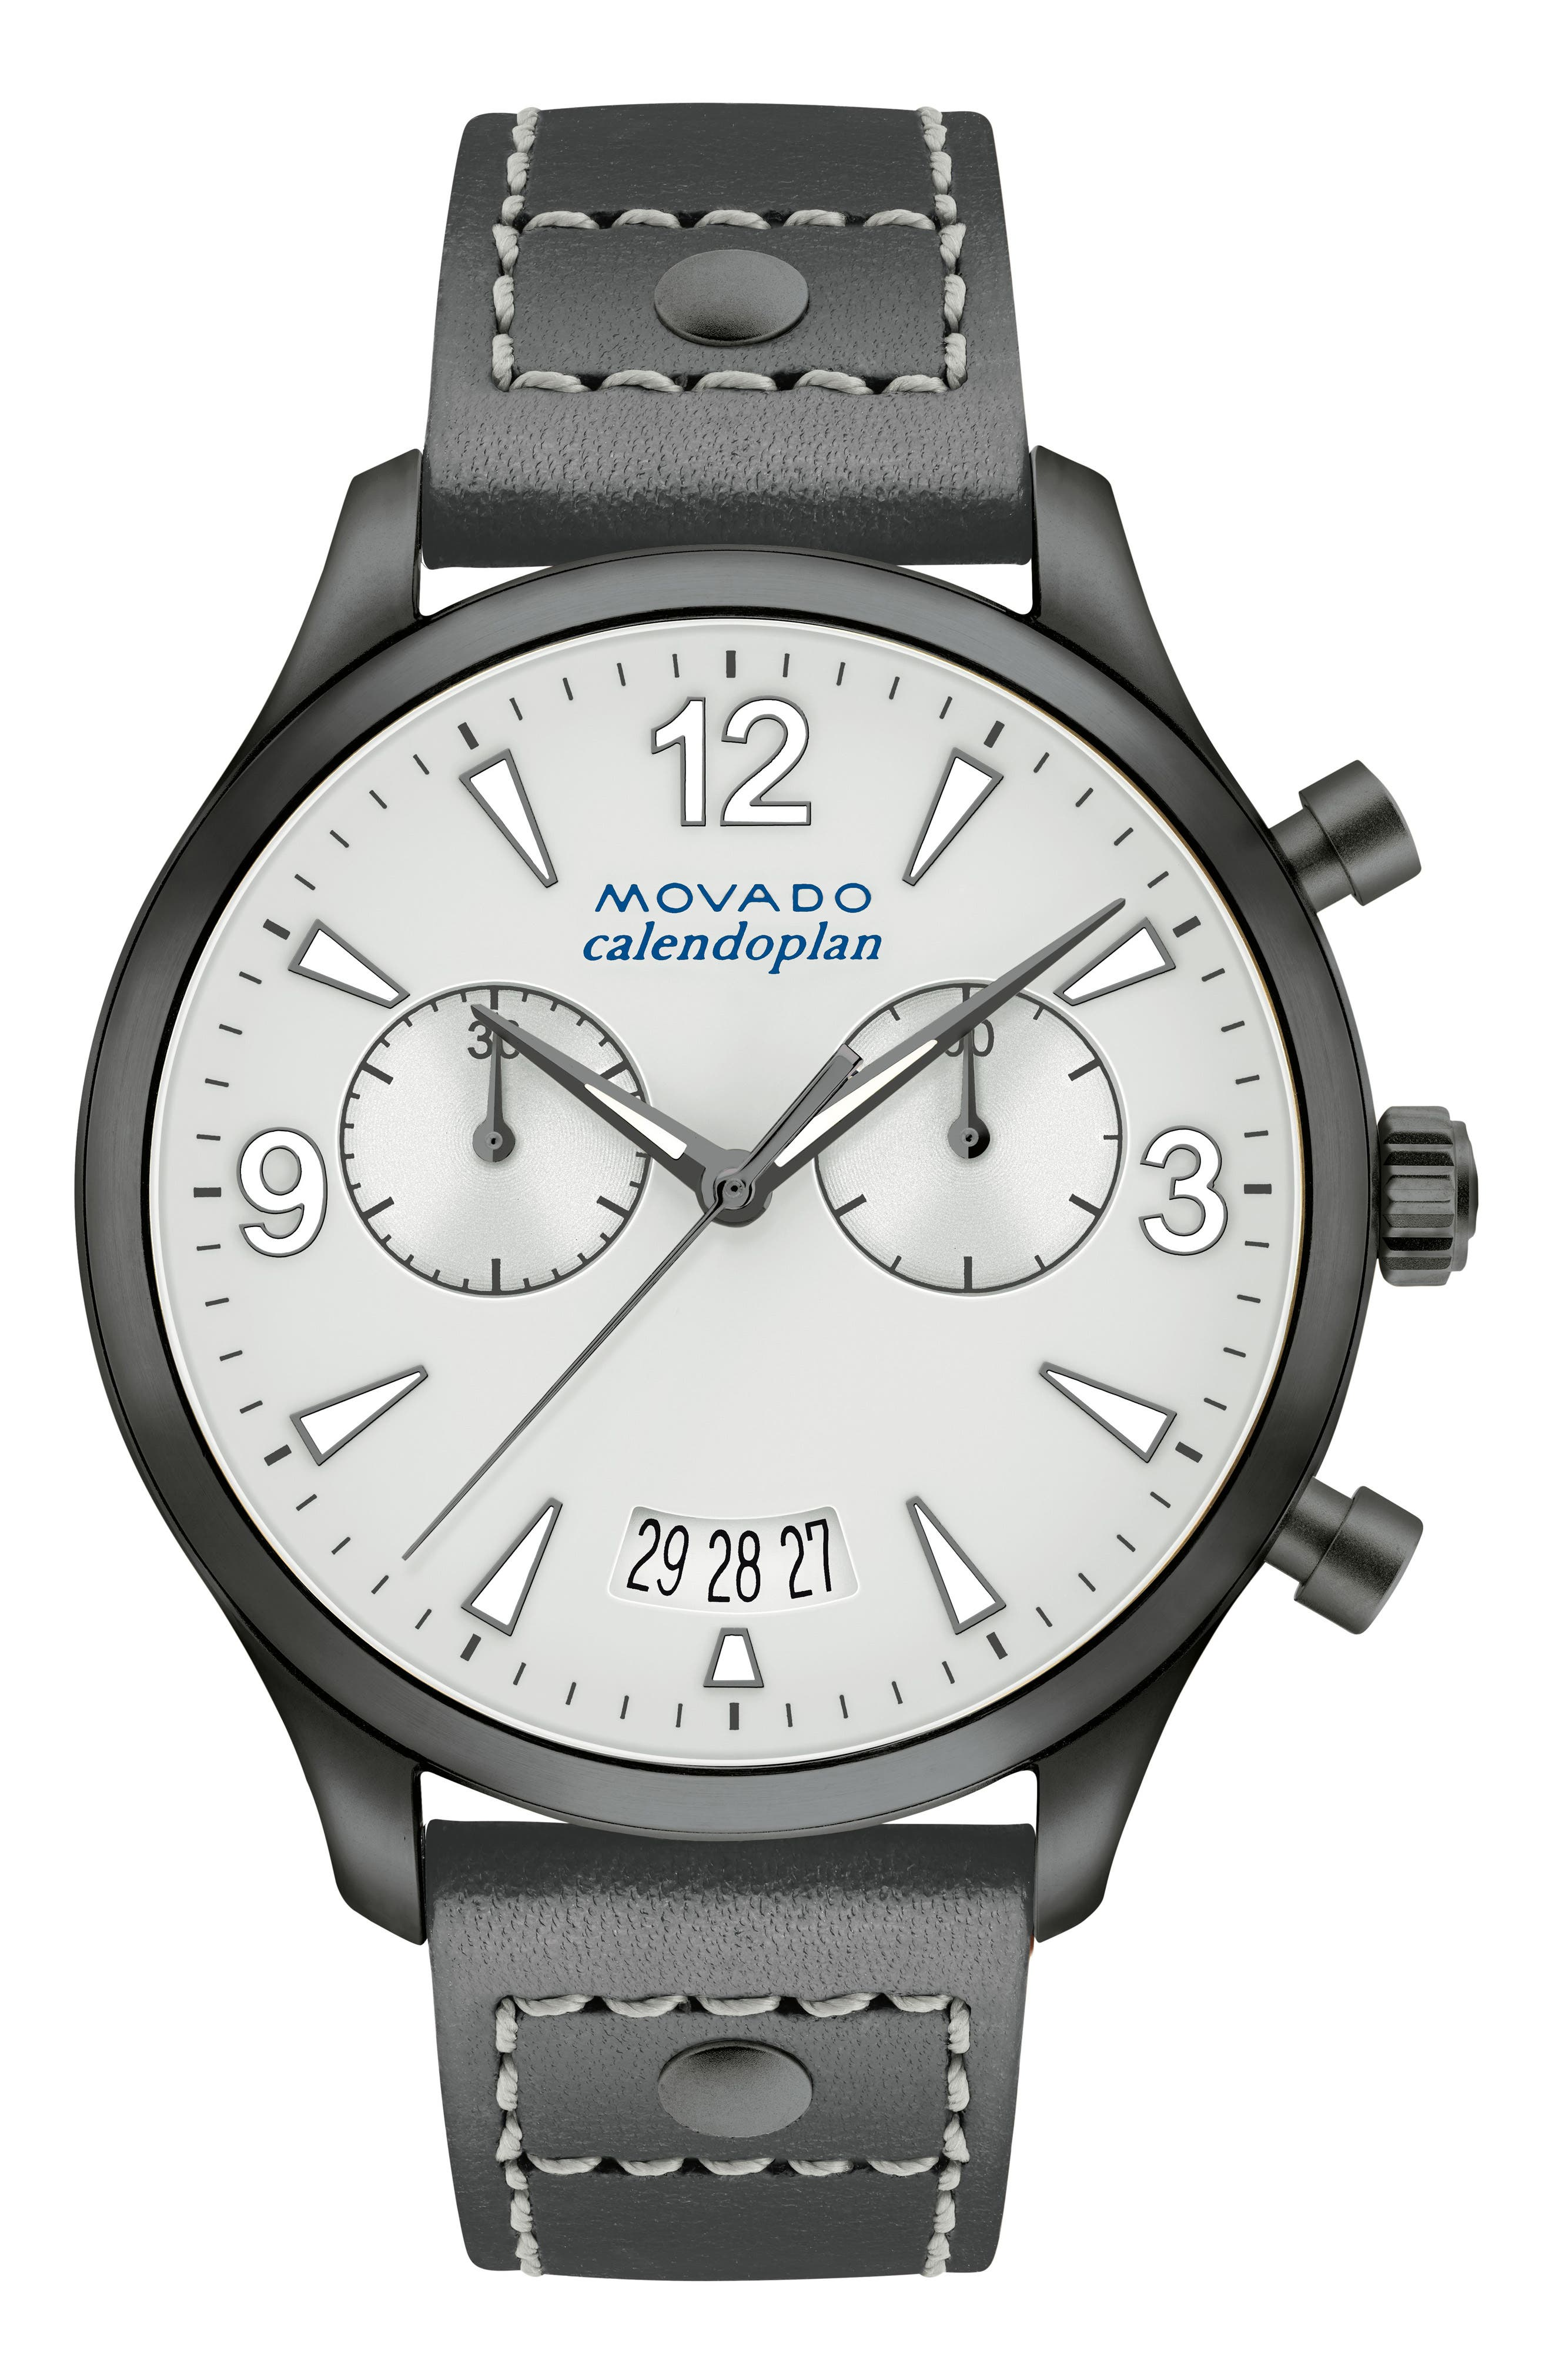 Main Image - Movado Heritage Calendoplan Chronograph Leather Strap Watch, 38mm